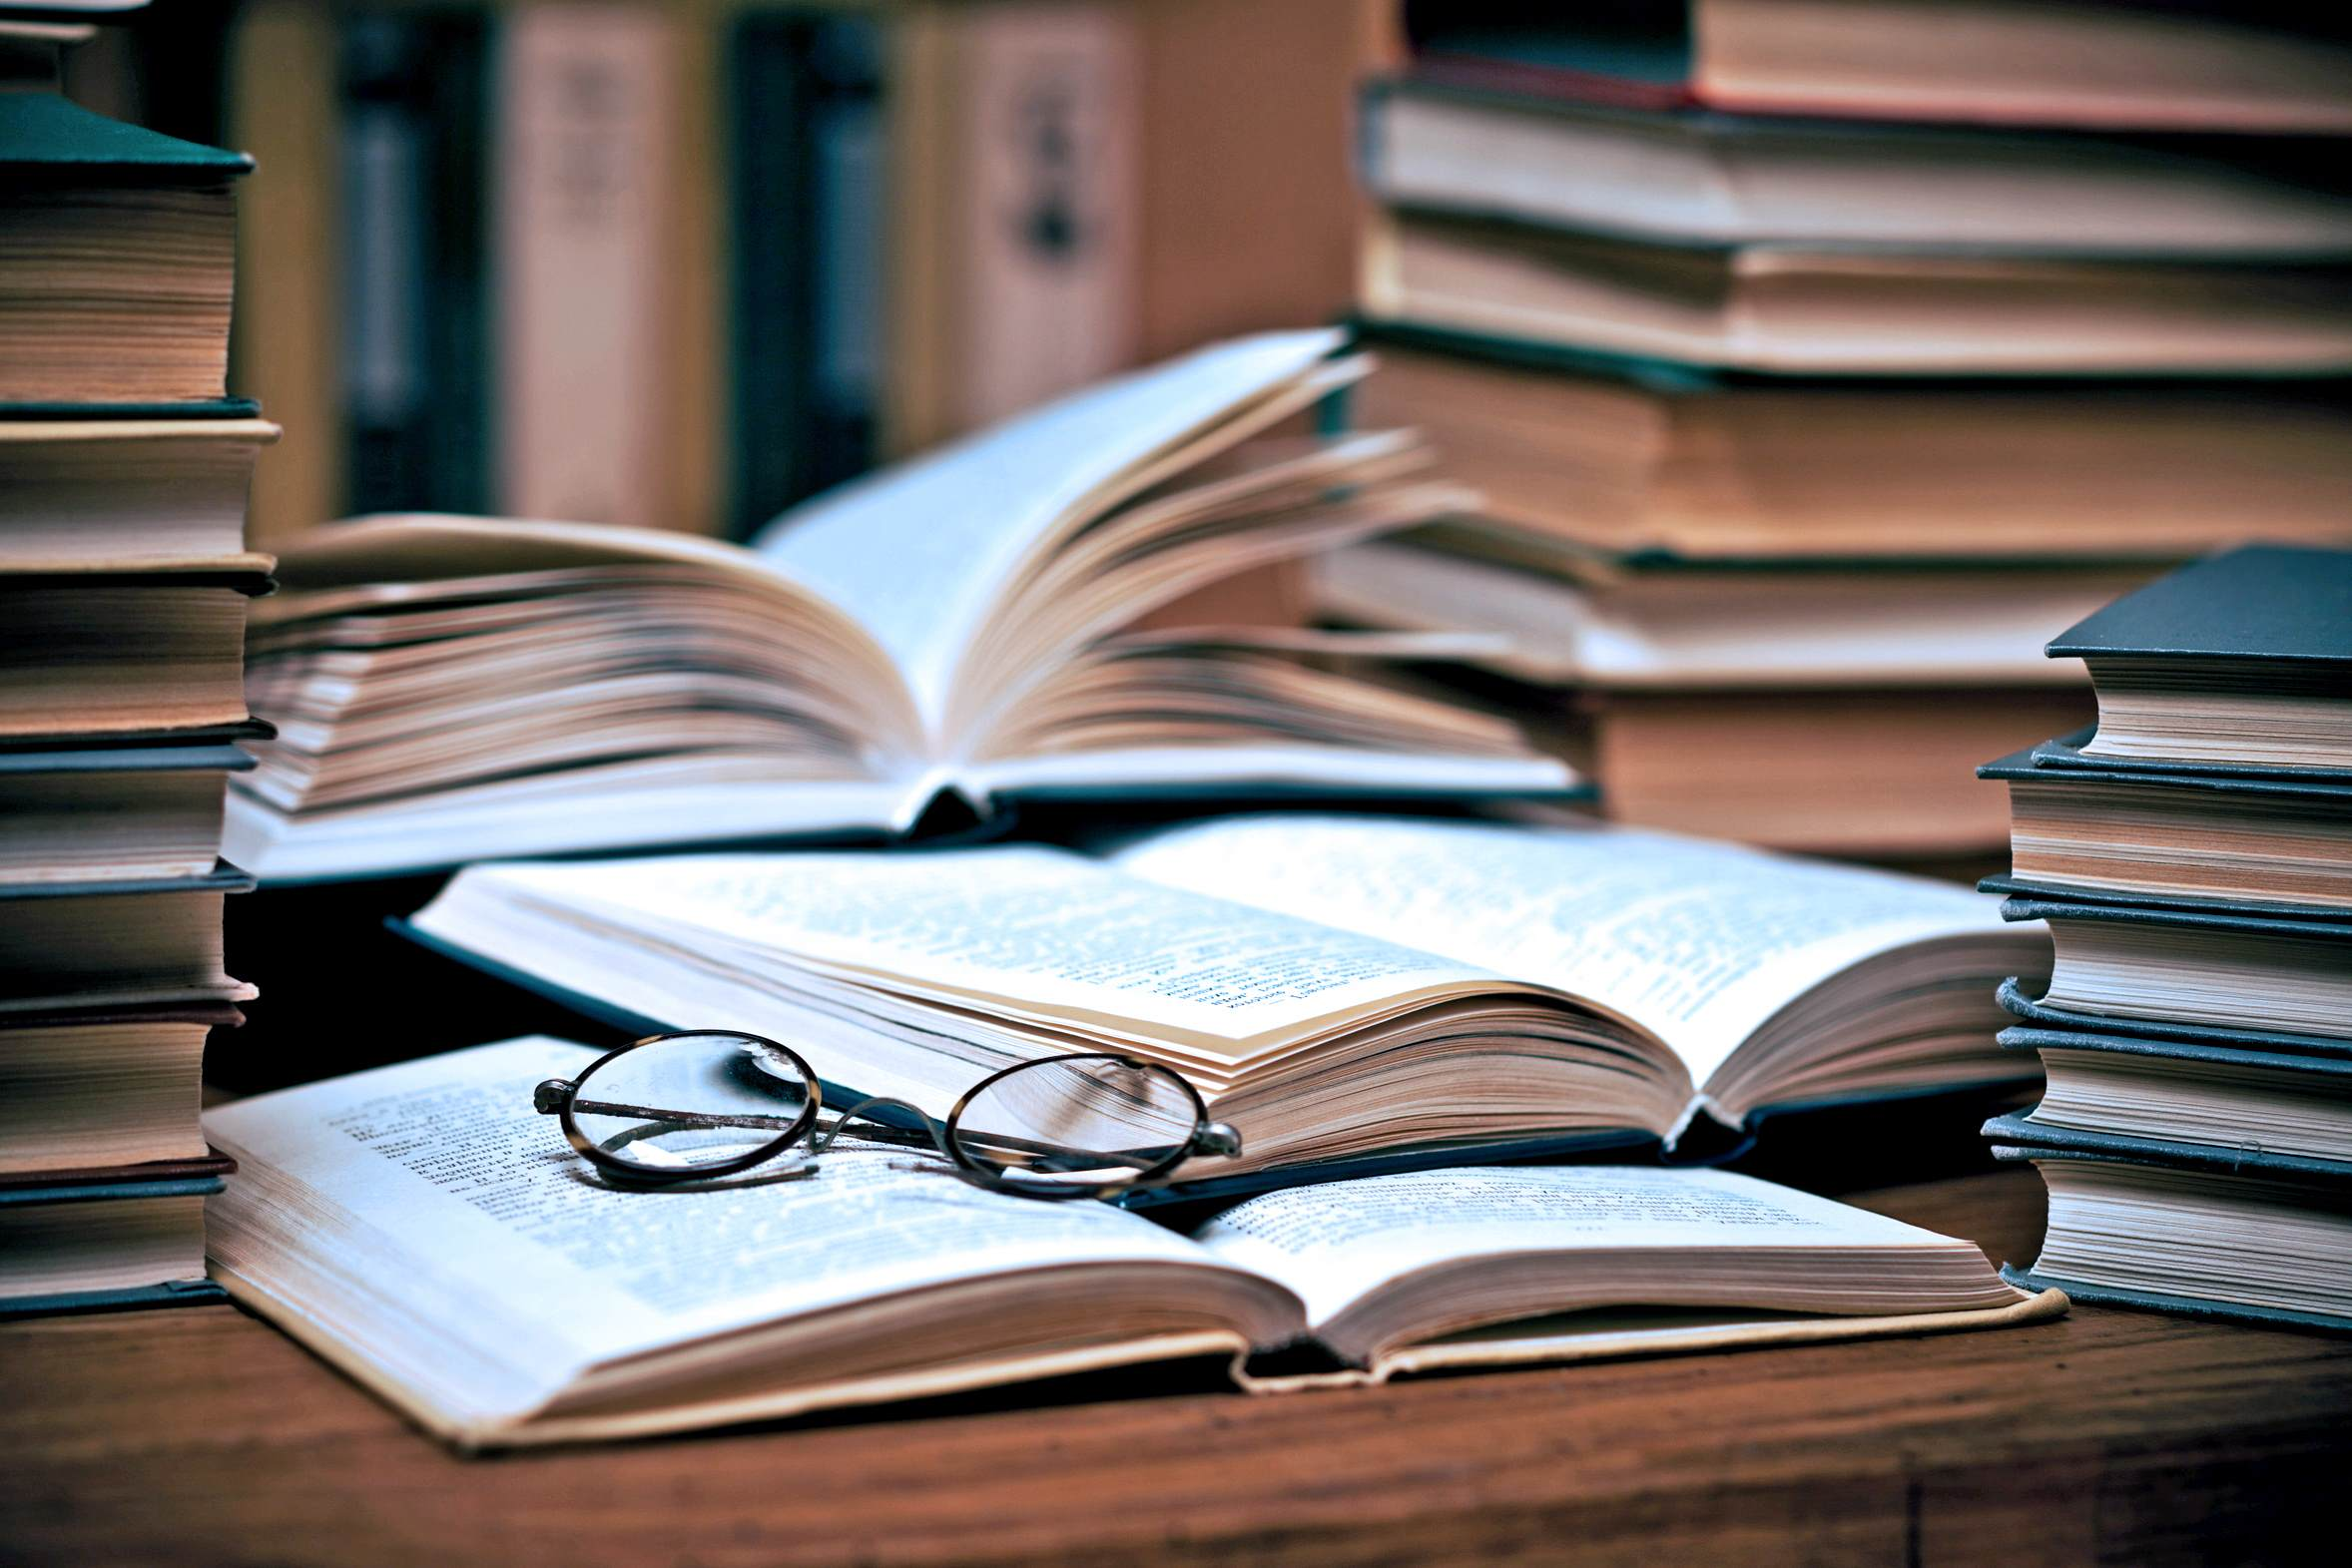 Glasses on the opened book surrounded by stack of books